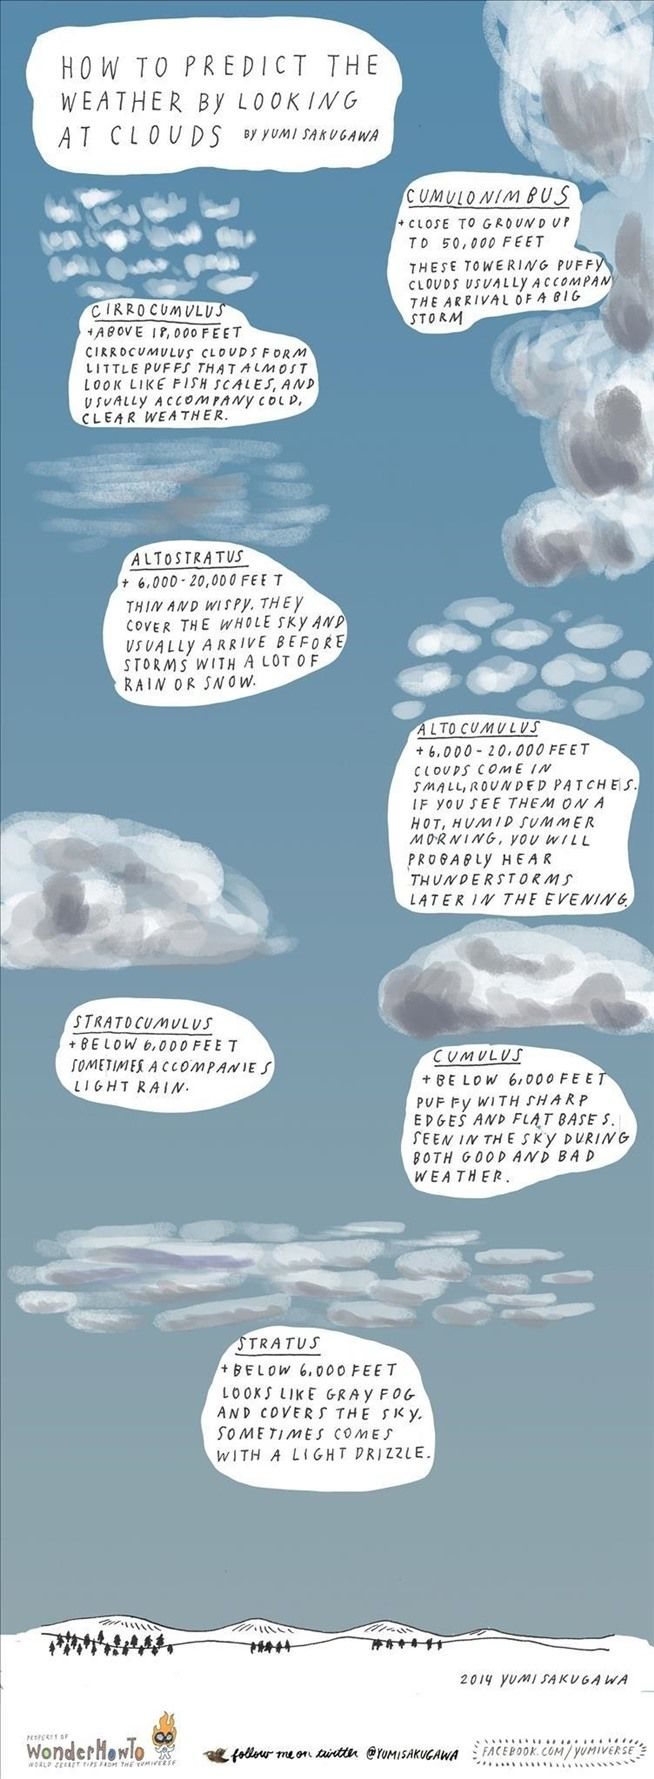 Storm Spotting 101: How to Predict the Weather Using Nothing but Cloud Shapes Posted By Yumi Sakugawa